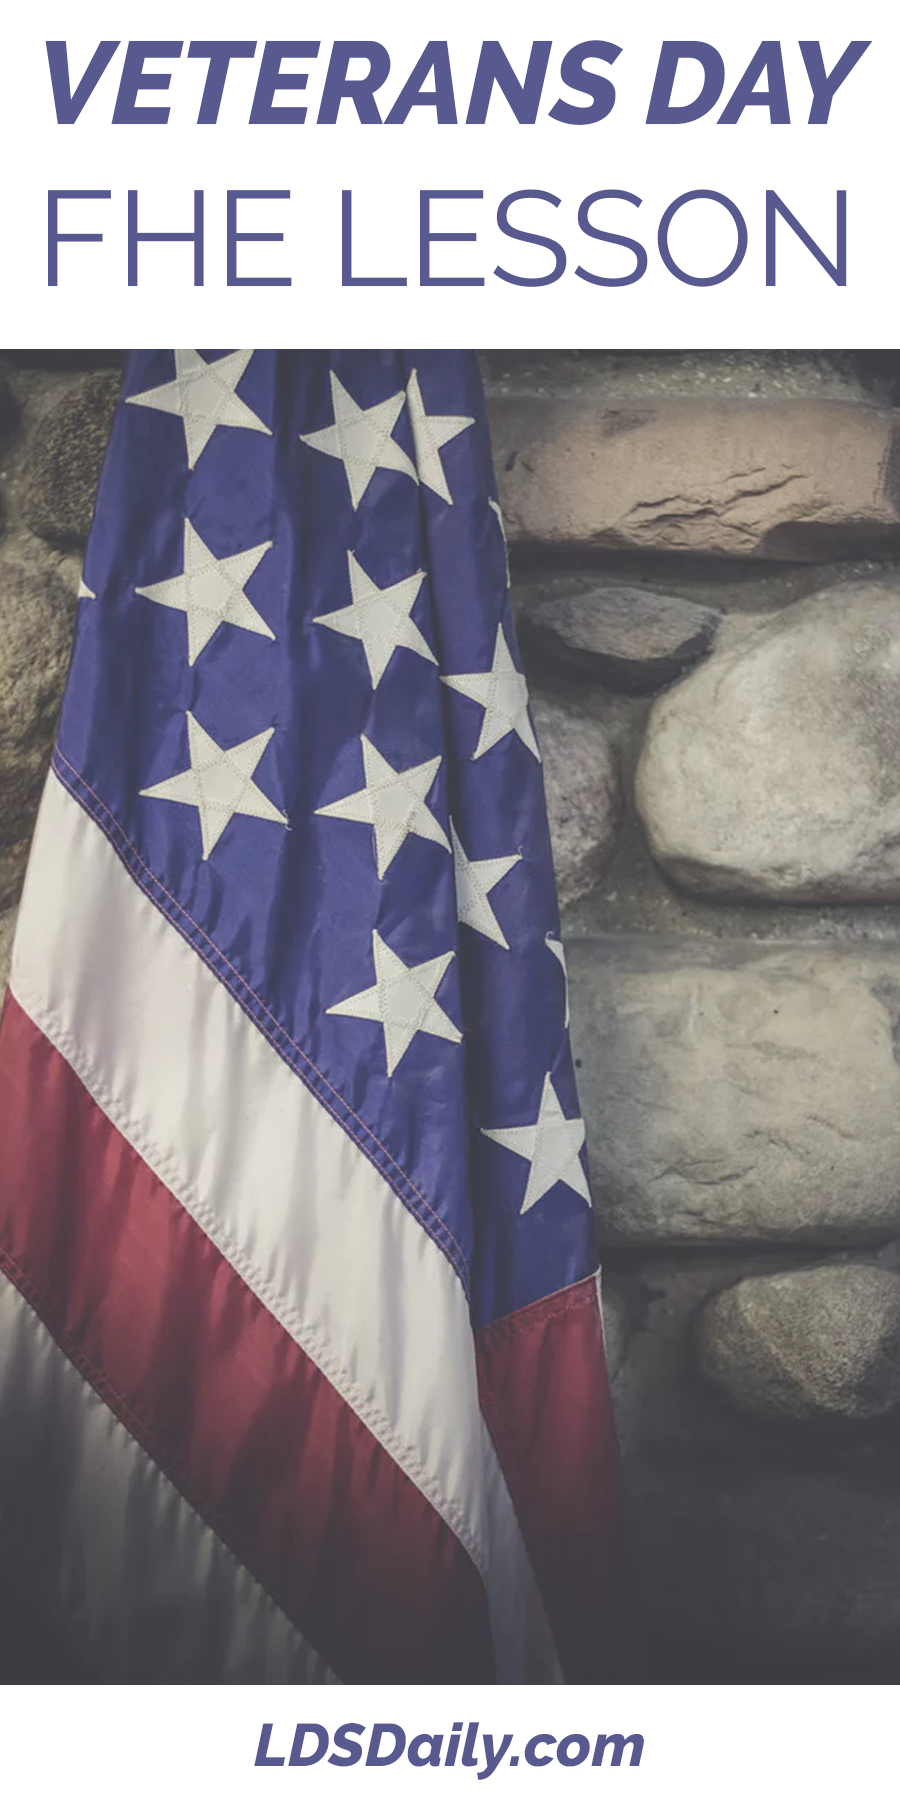 veterans sacrifices essay The observance of veterans day on november 11 not only preserves the historical significance of the date, but celebrates and honors america's veterans' patriotism, love of country, and willingness to serve and sacrifice.